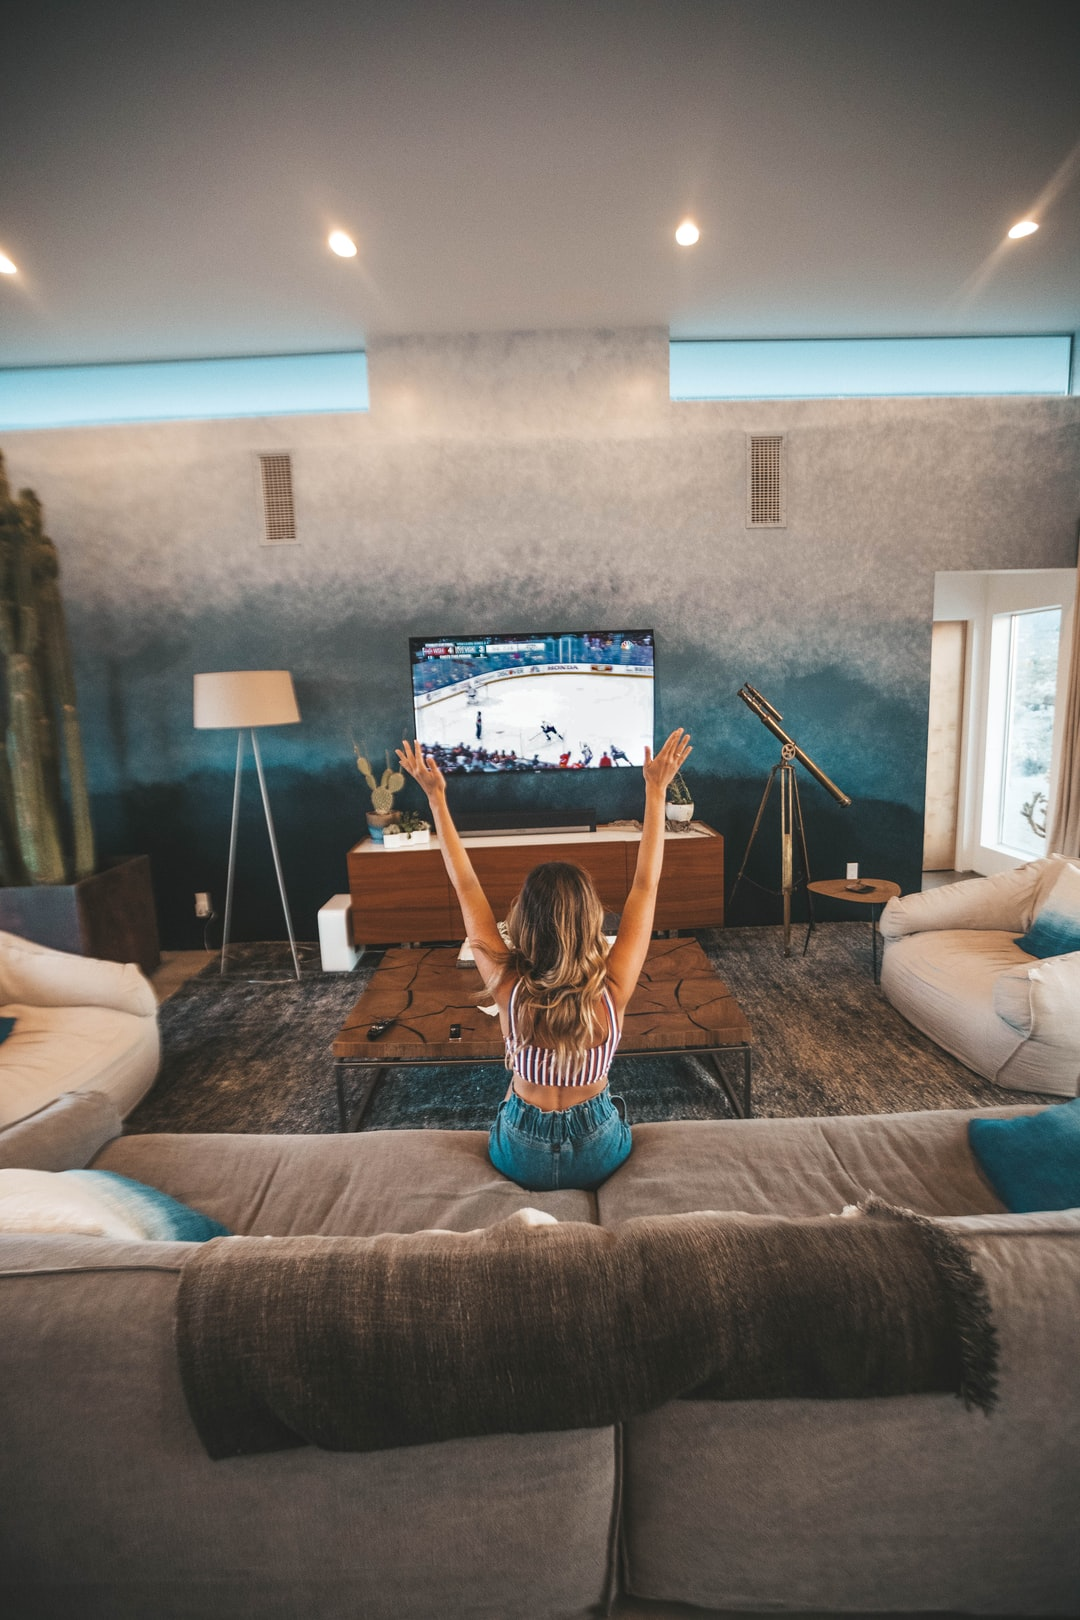 My home town Capitals won their first Stanley Cup as my girlfriend and I were staying in Joshua Tree for a retreat/getaway. I took a picture of her celebrating during the 3rd period as the game was winding down to commemorate the moment.